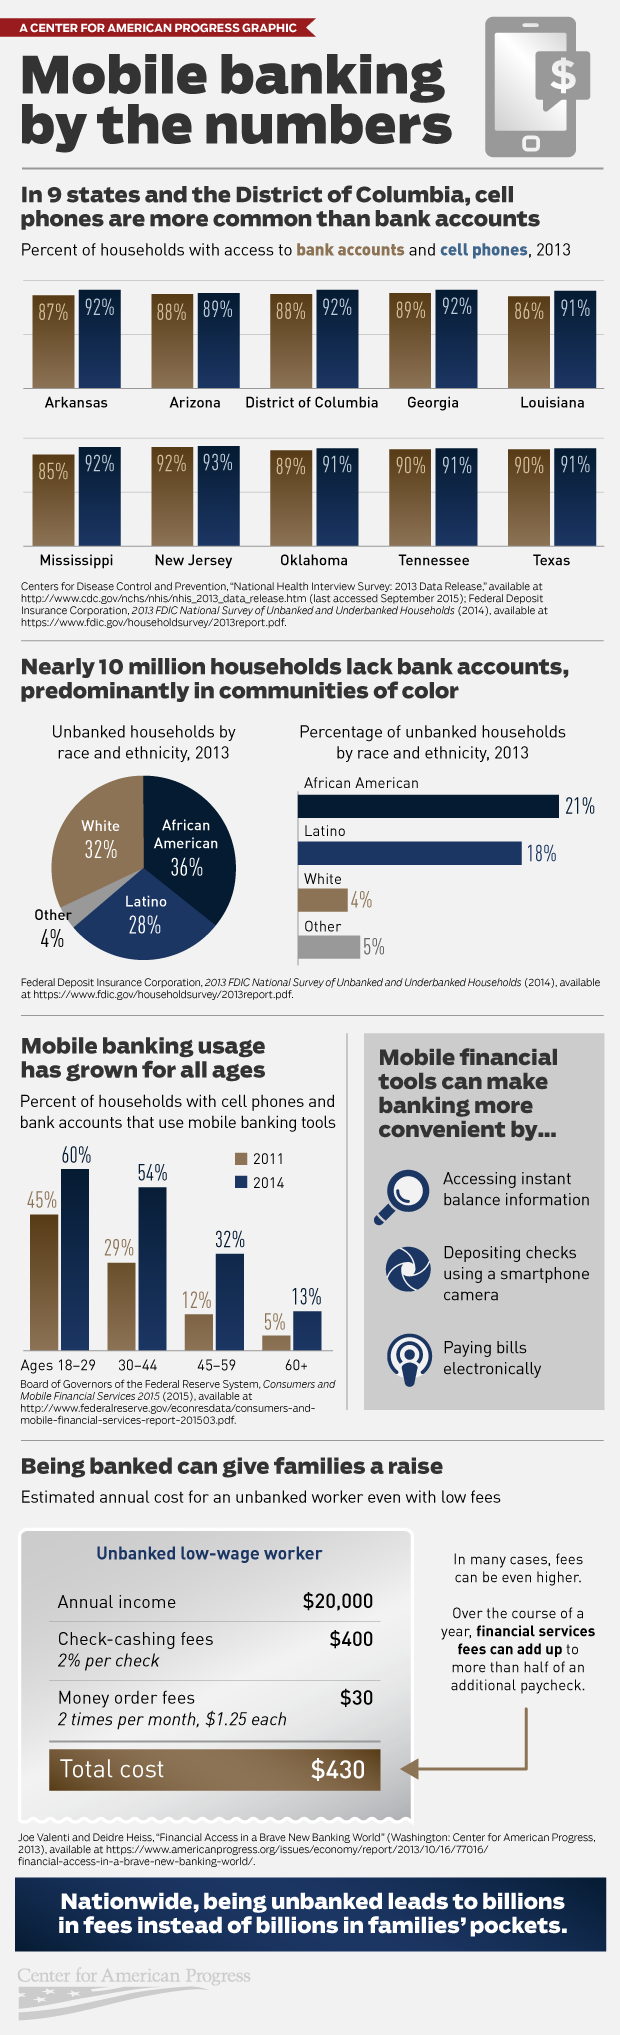 mobile_banking1.png